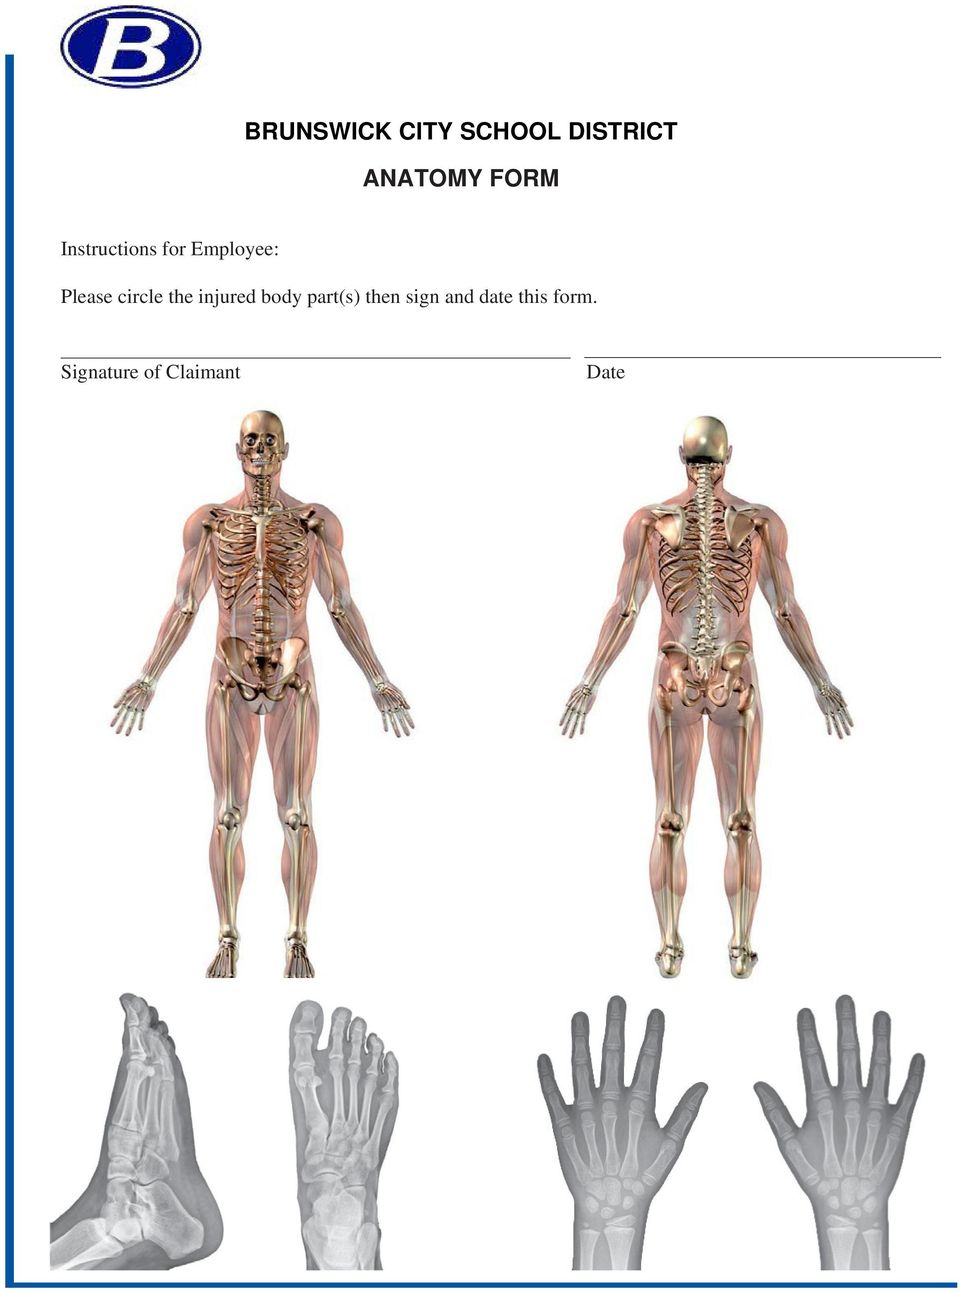 circle the injured body part(s) then sign